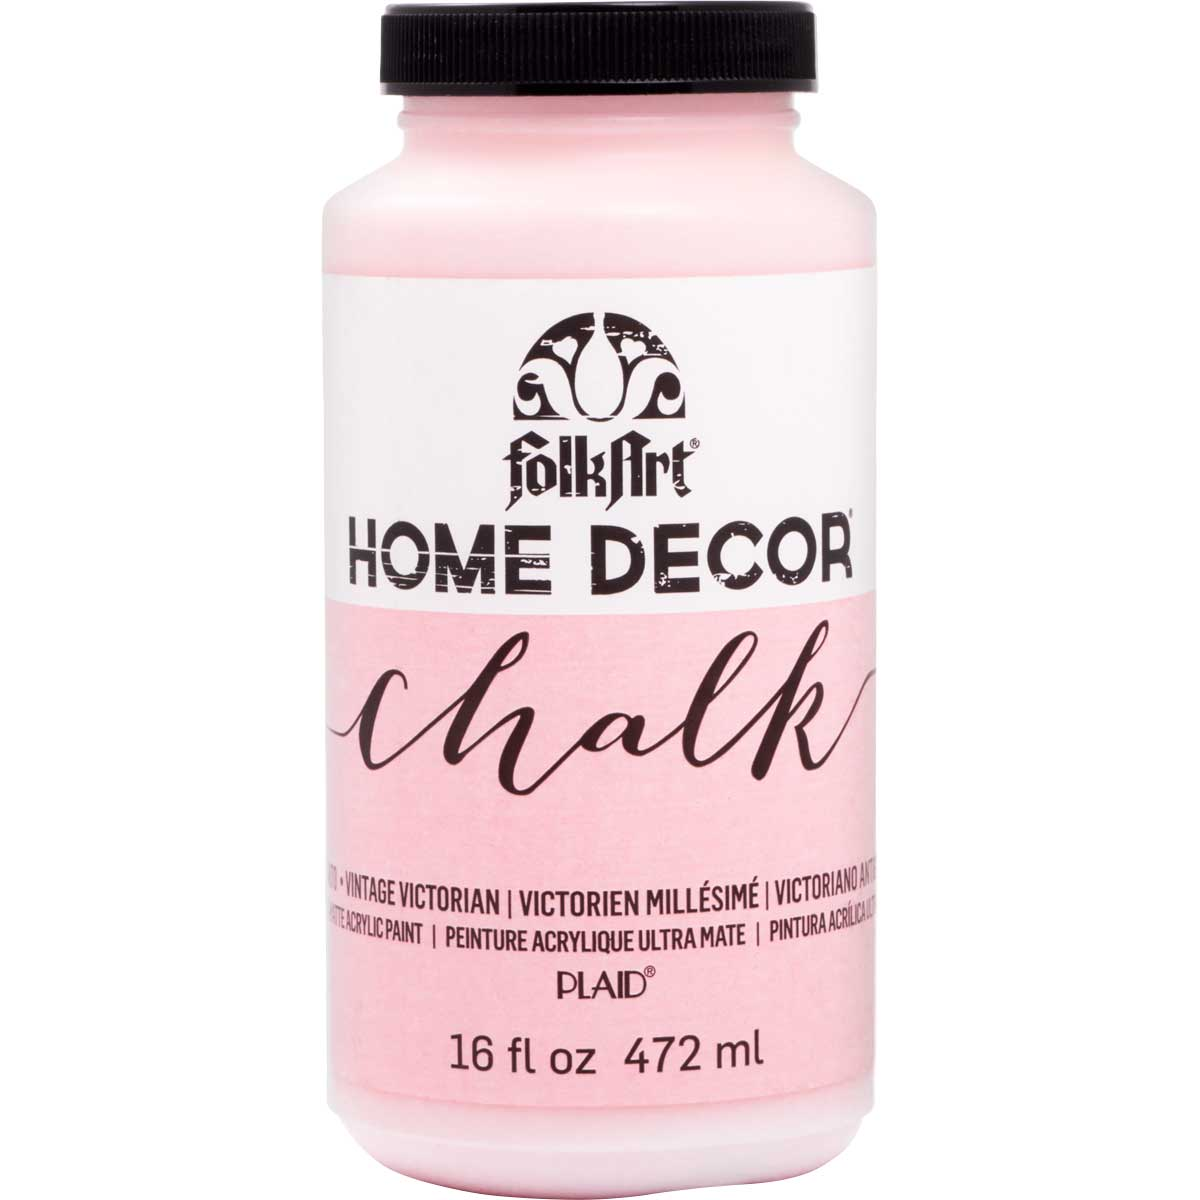 FolkArt ® Home Decor™ Chalk - Vintage Victorian, 16 oz. - 34870